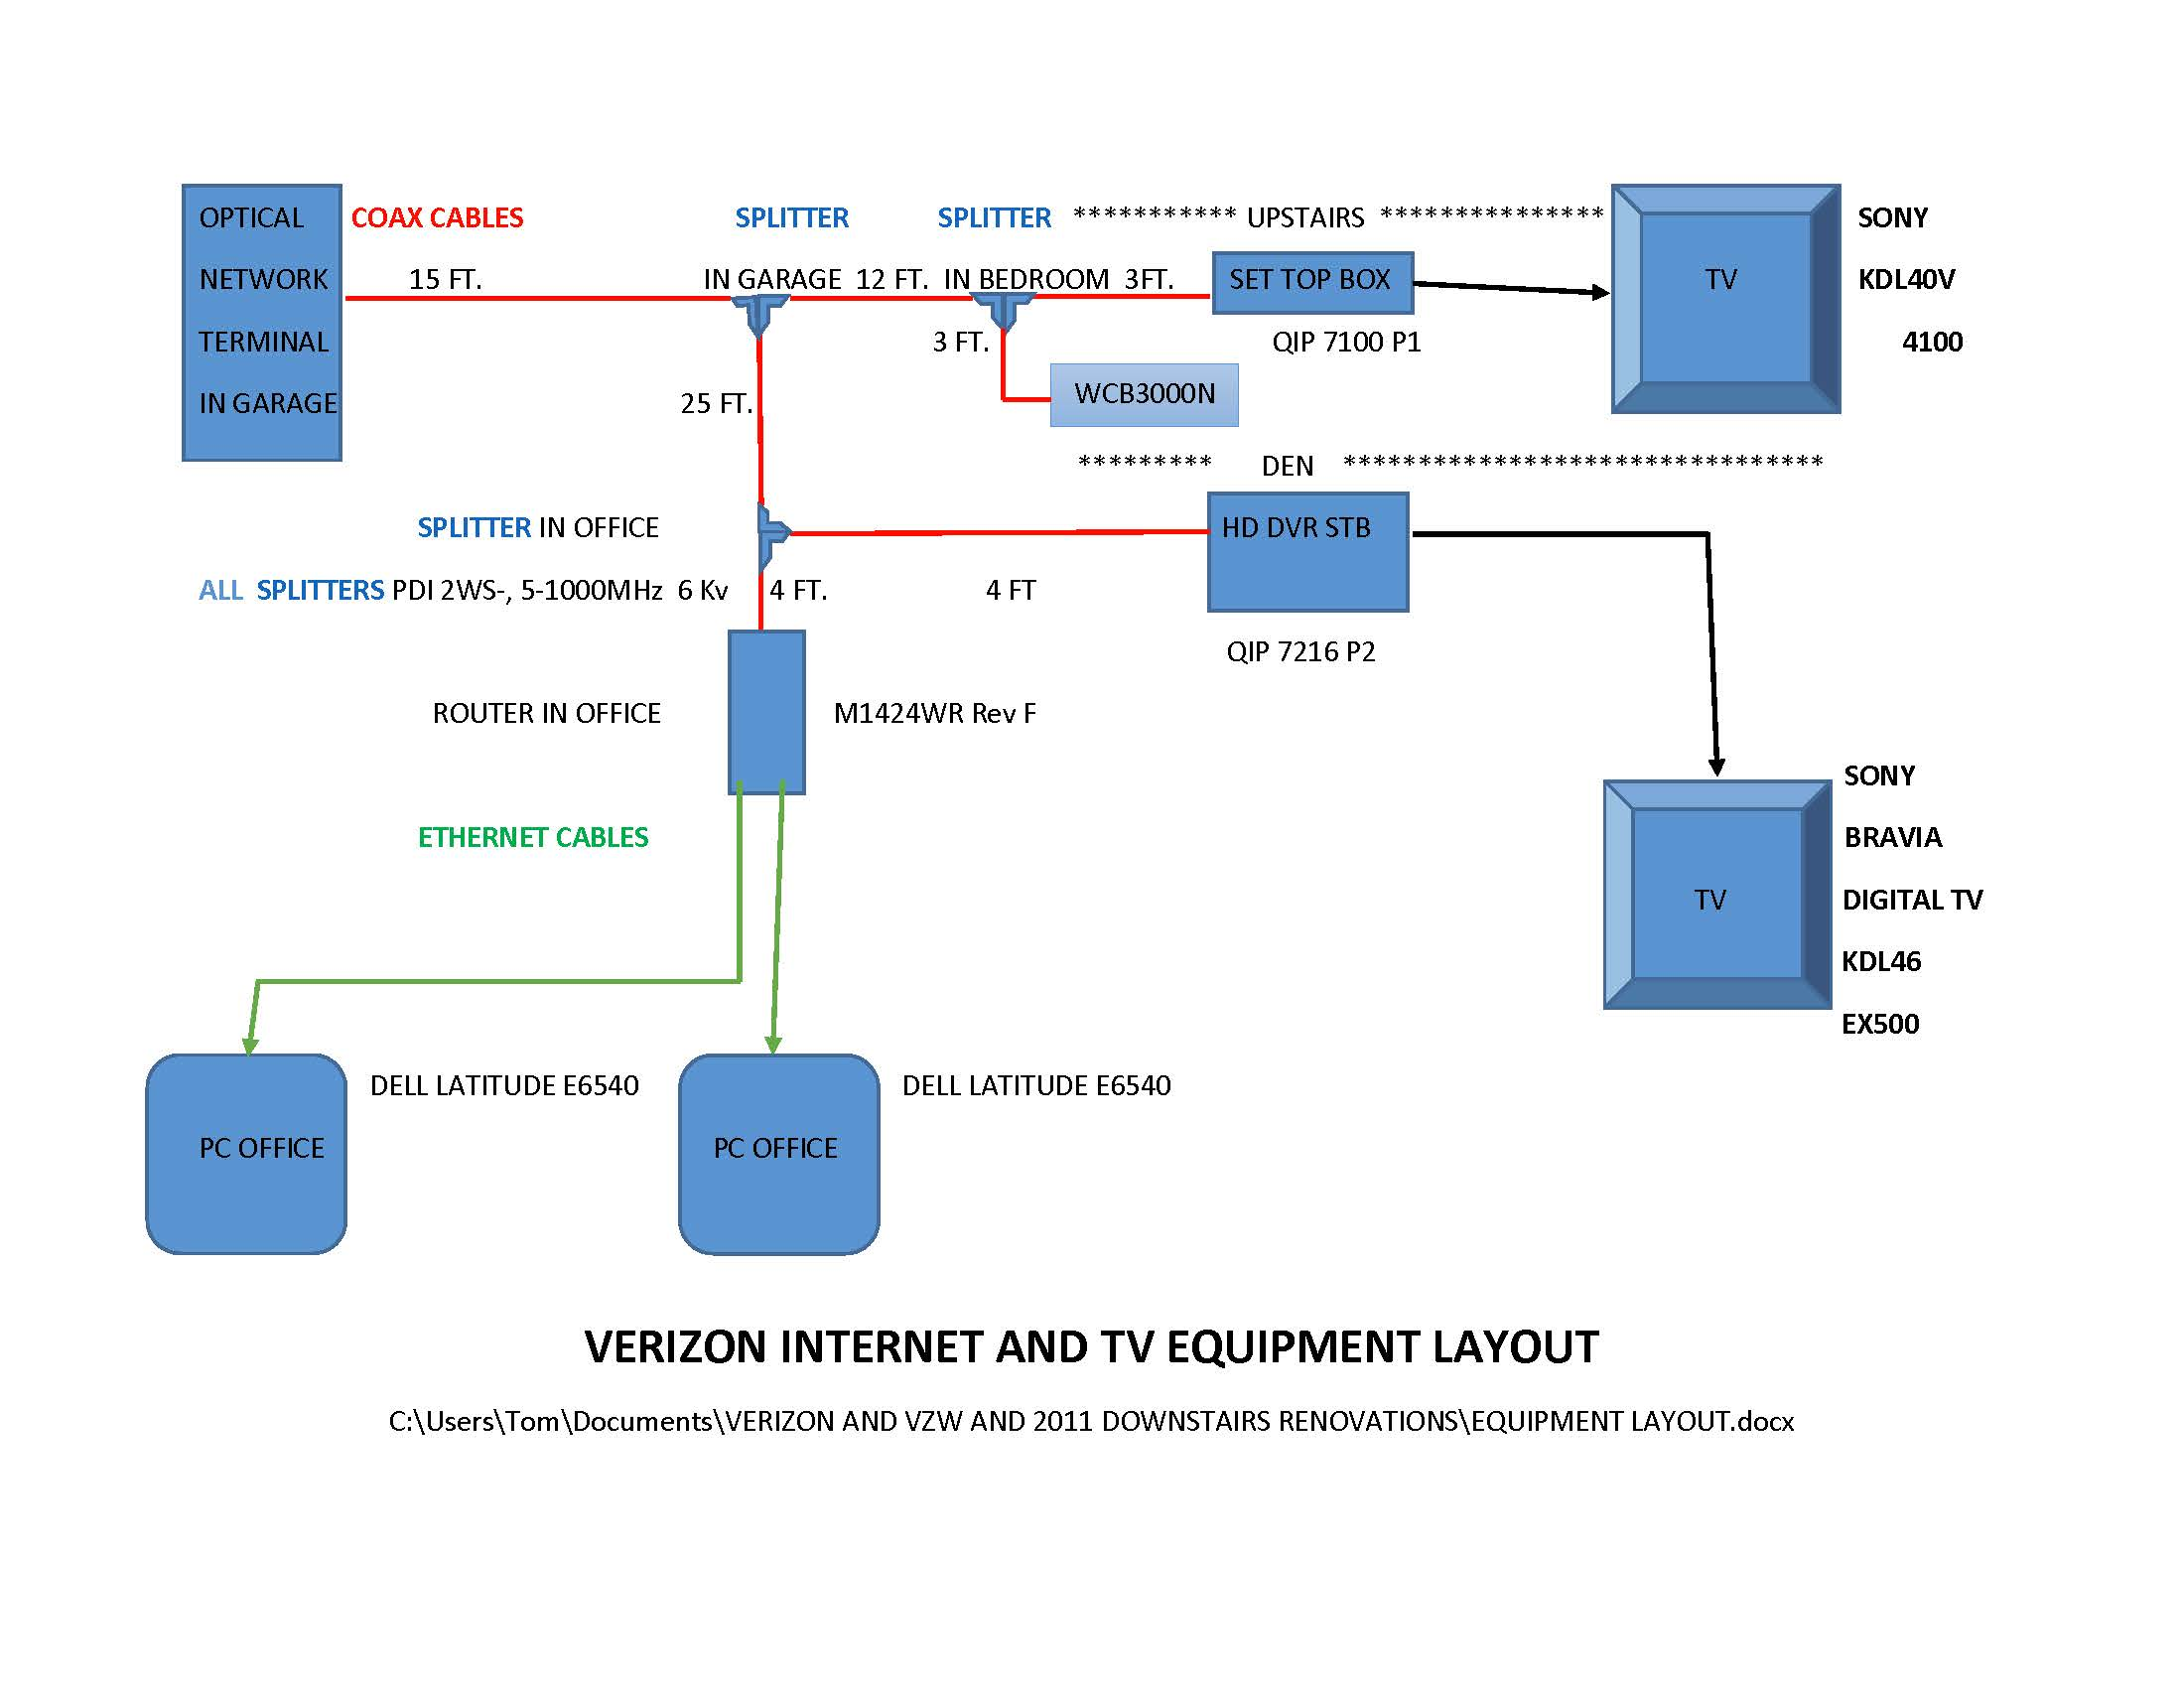 new fios setup - moca coax - verizon fios community verizon wireless home network diagram